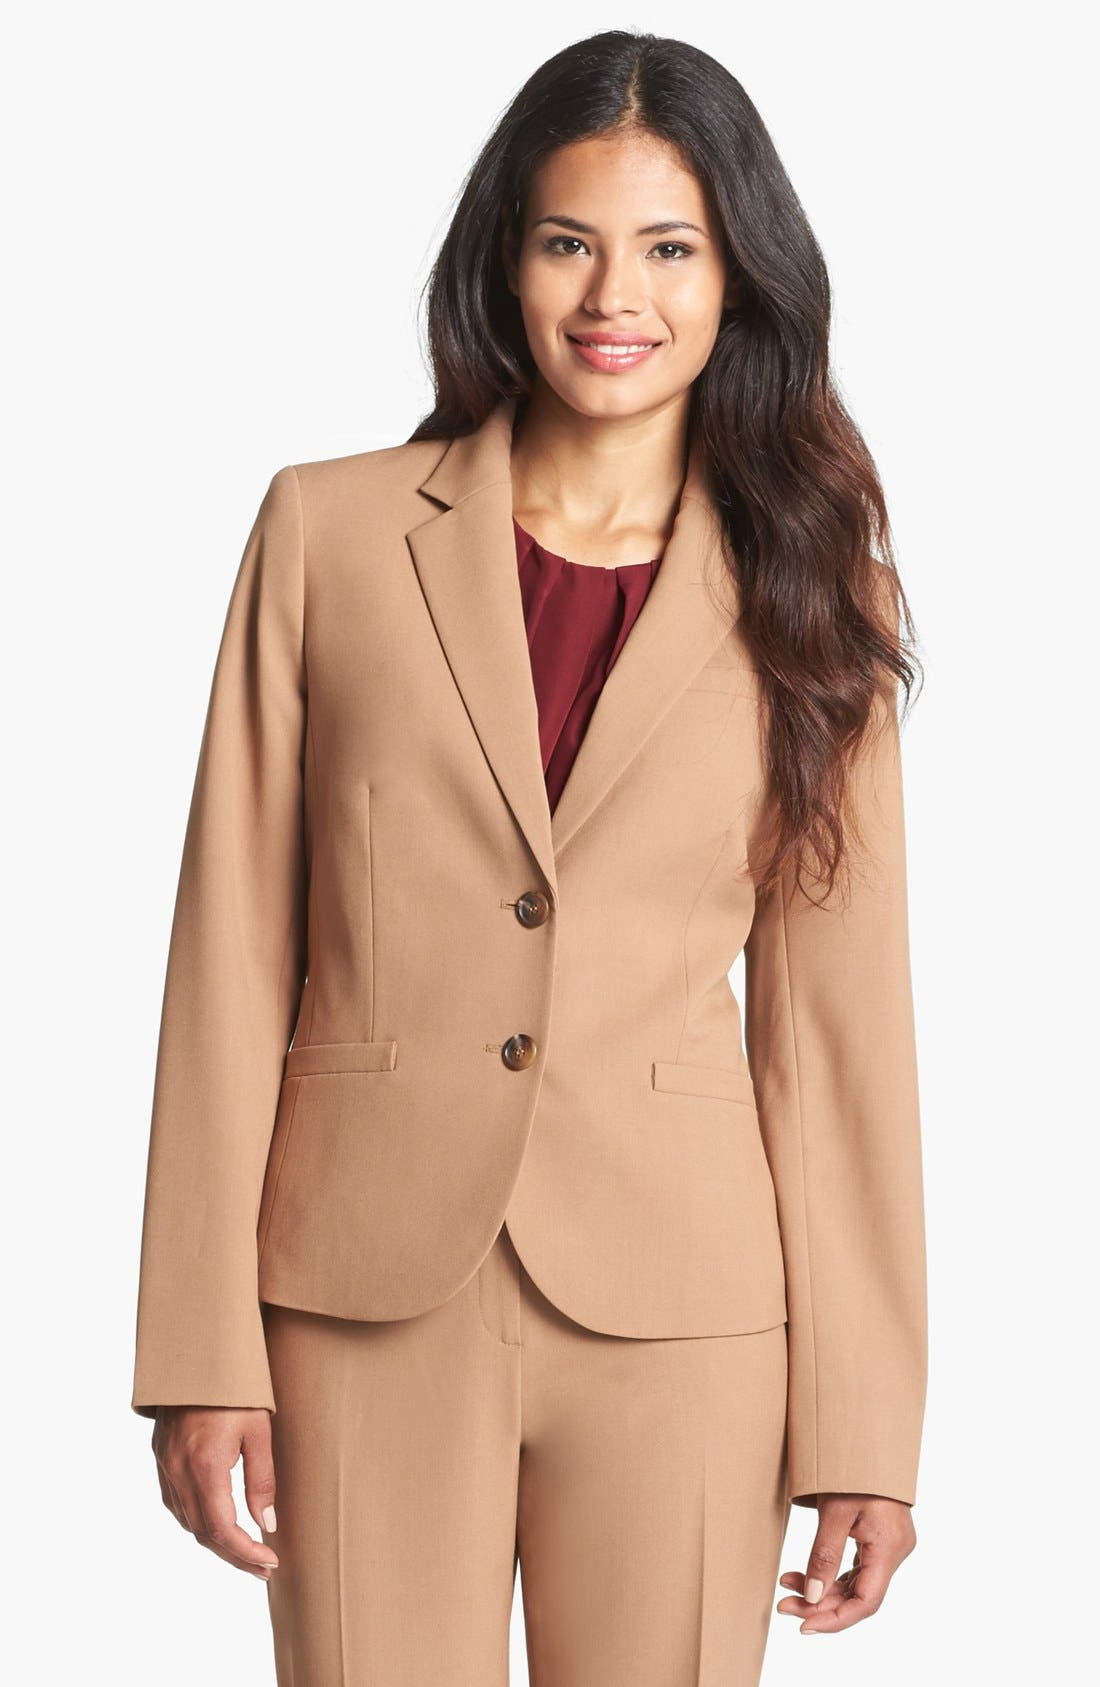 Alternate Image 1 Selected - Jones New York 'Olivia - Seasonless Stretch' Jacket (Regular & Petite)